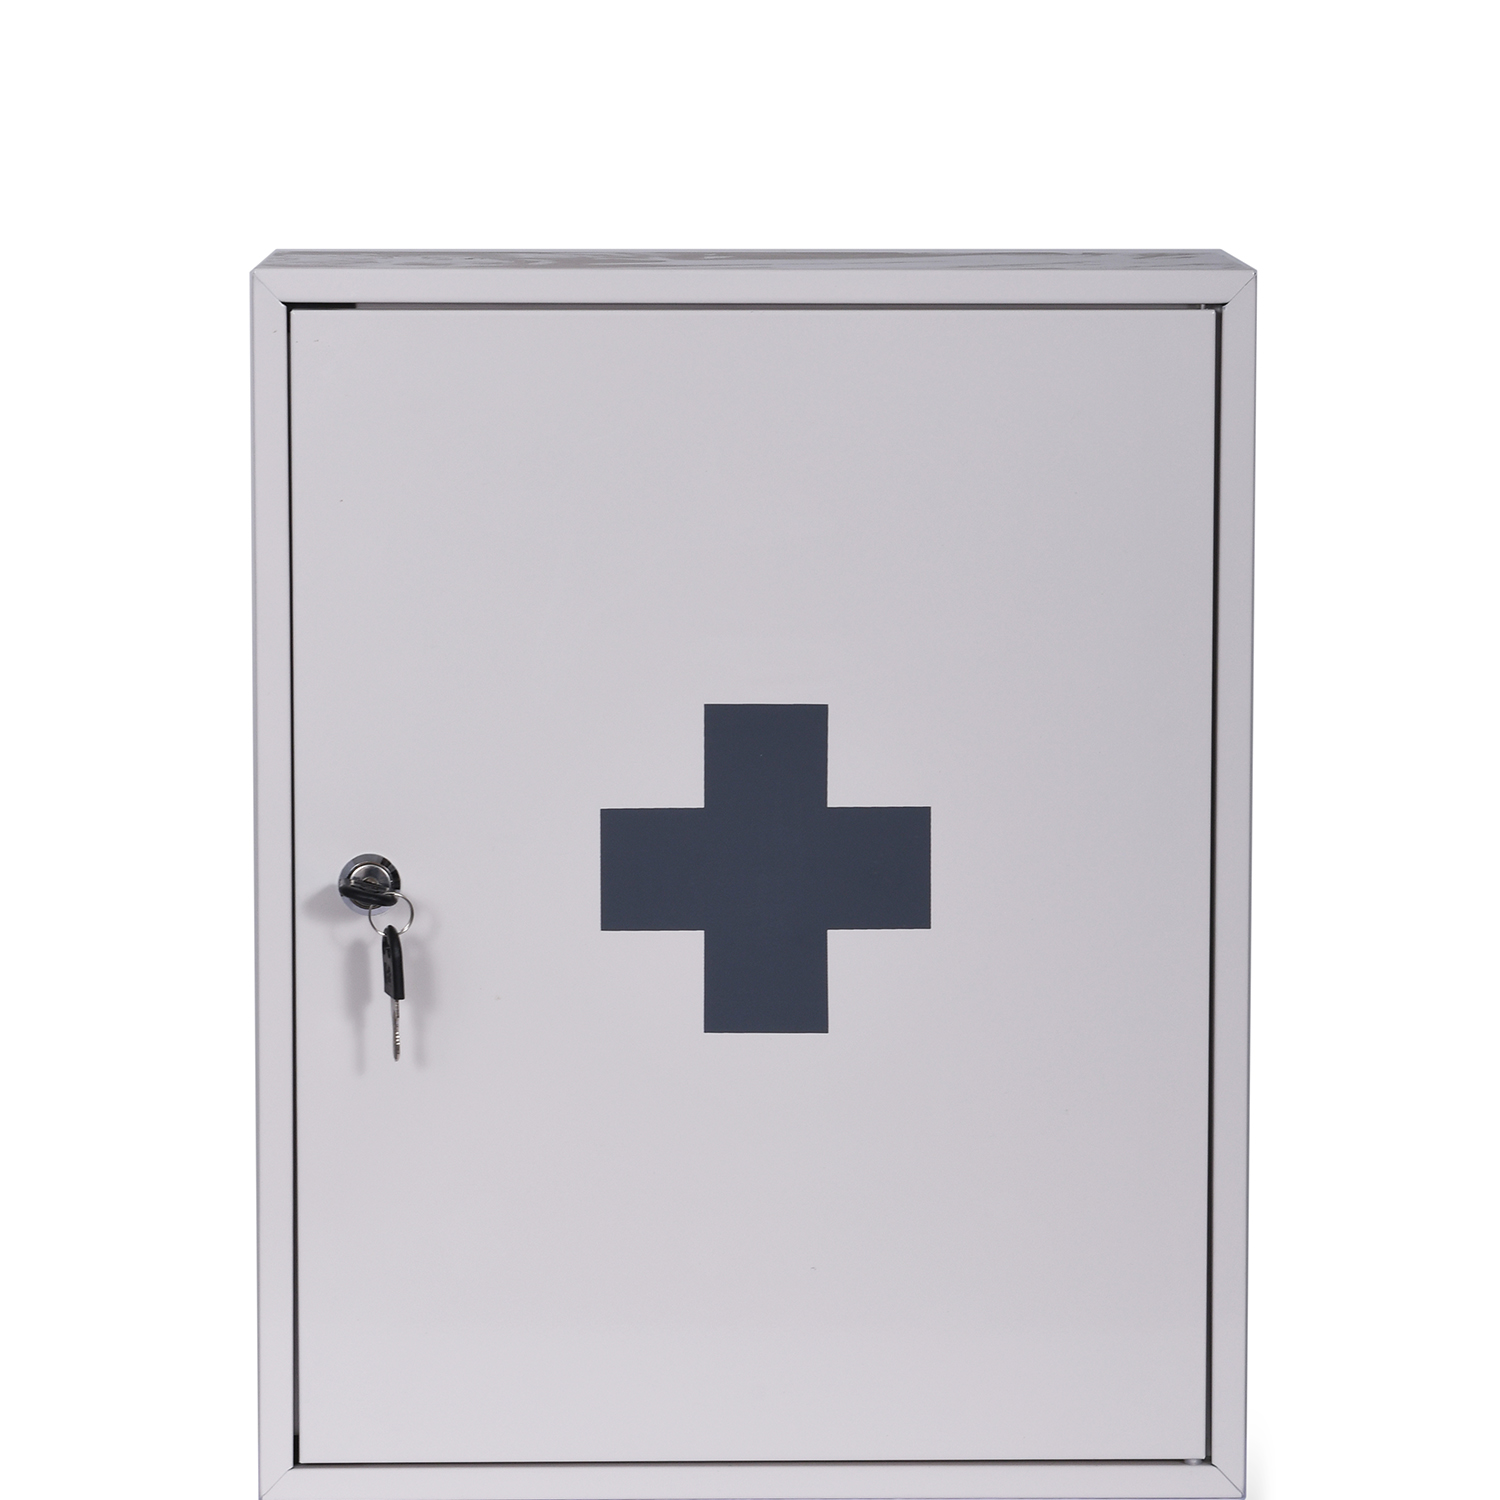 Image of Garden Trading First Aid Wall Cabinet, Chalk